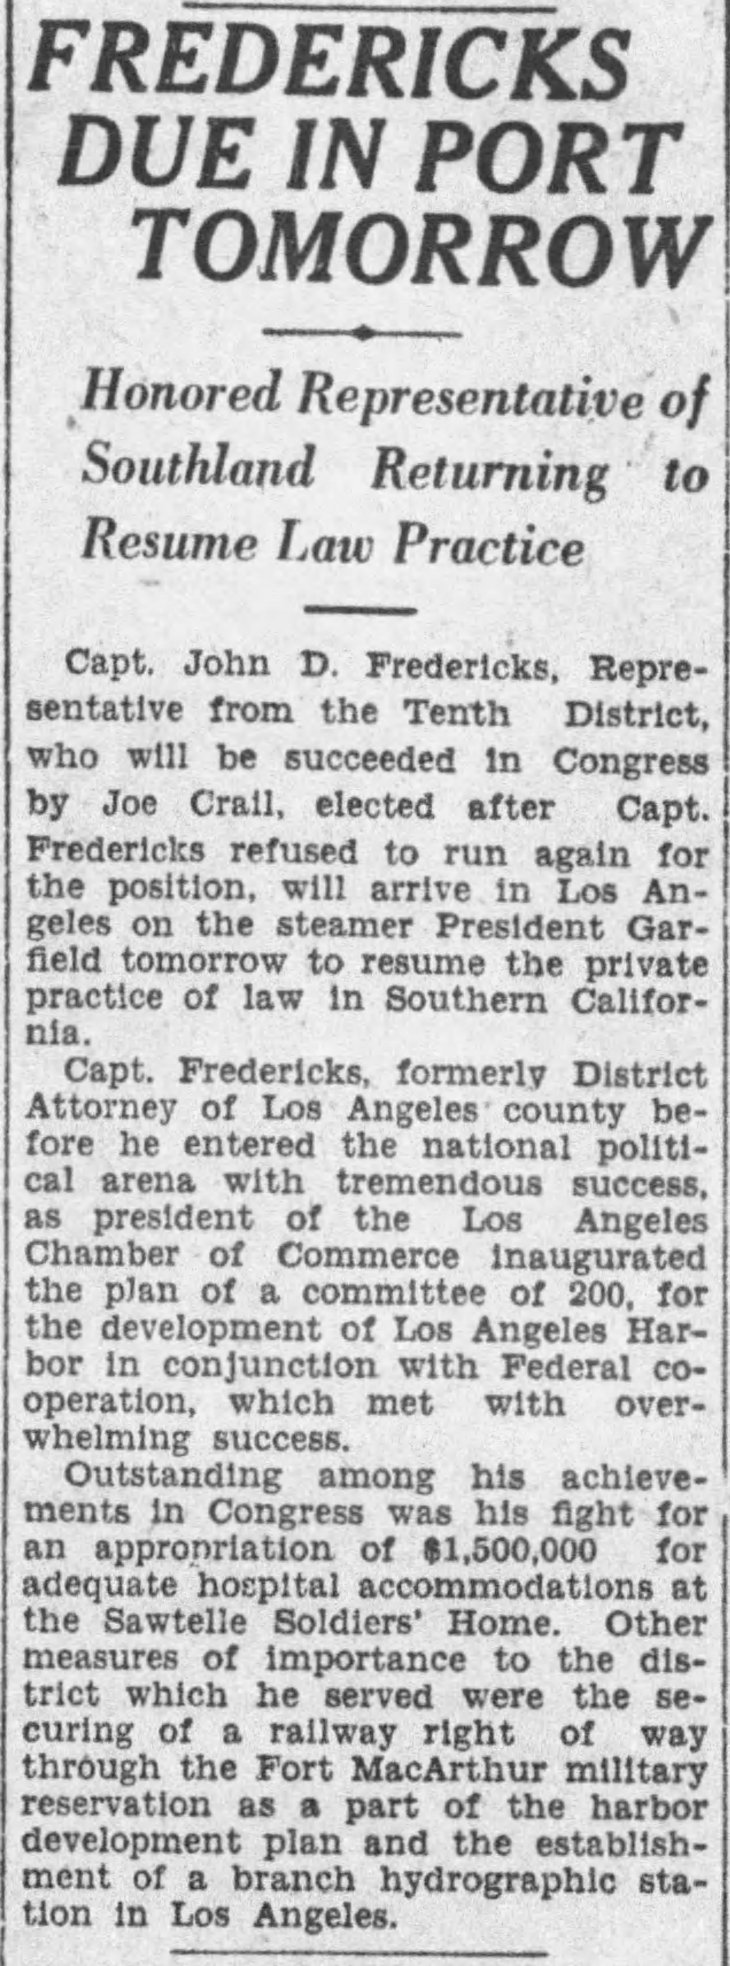 Returns from Congress The_Los_Angeles_Times_Sat__Apr_2__1927_